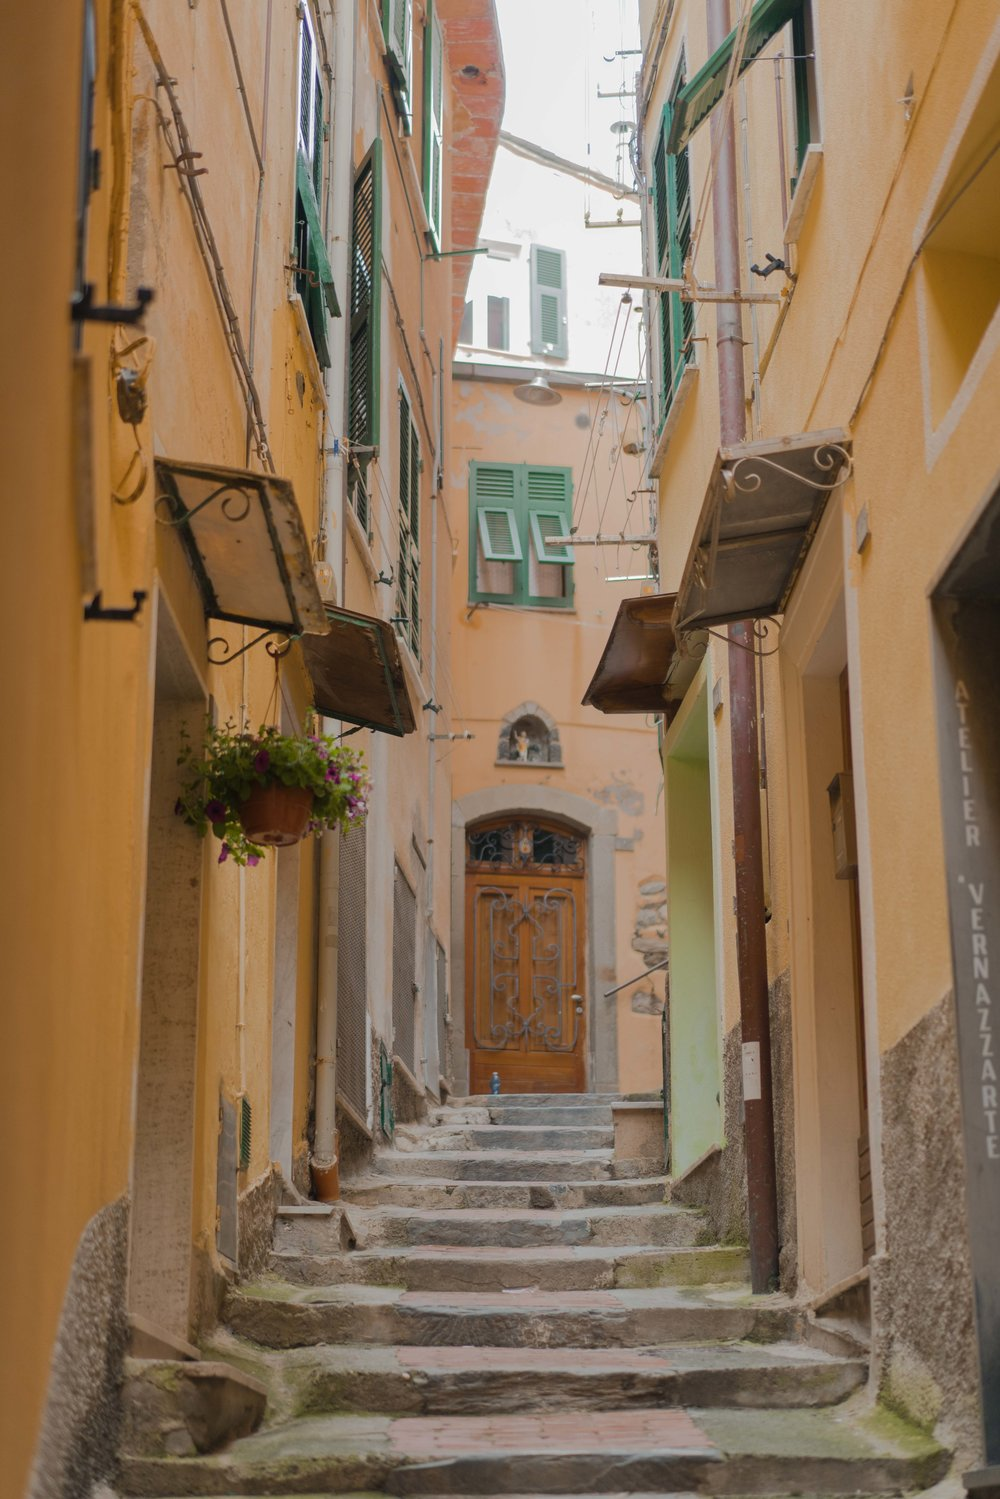 Holiday in Italy - Day 7 Cinque Terre Vernazza - Sony A7R2 -- 132.jpg